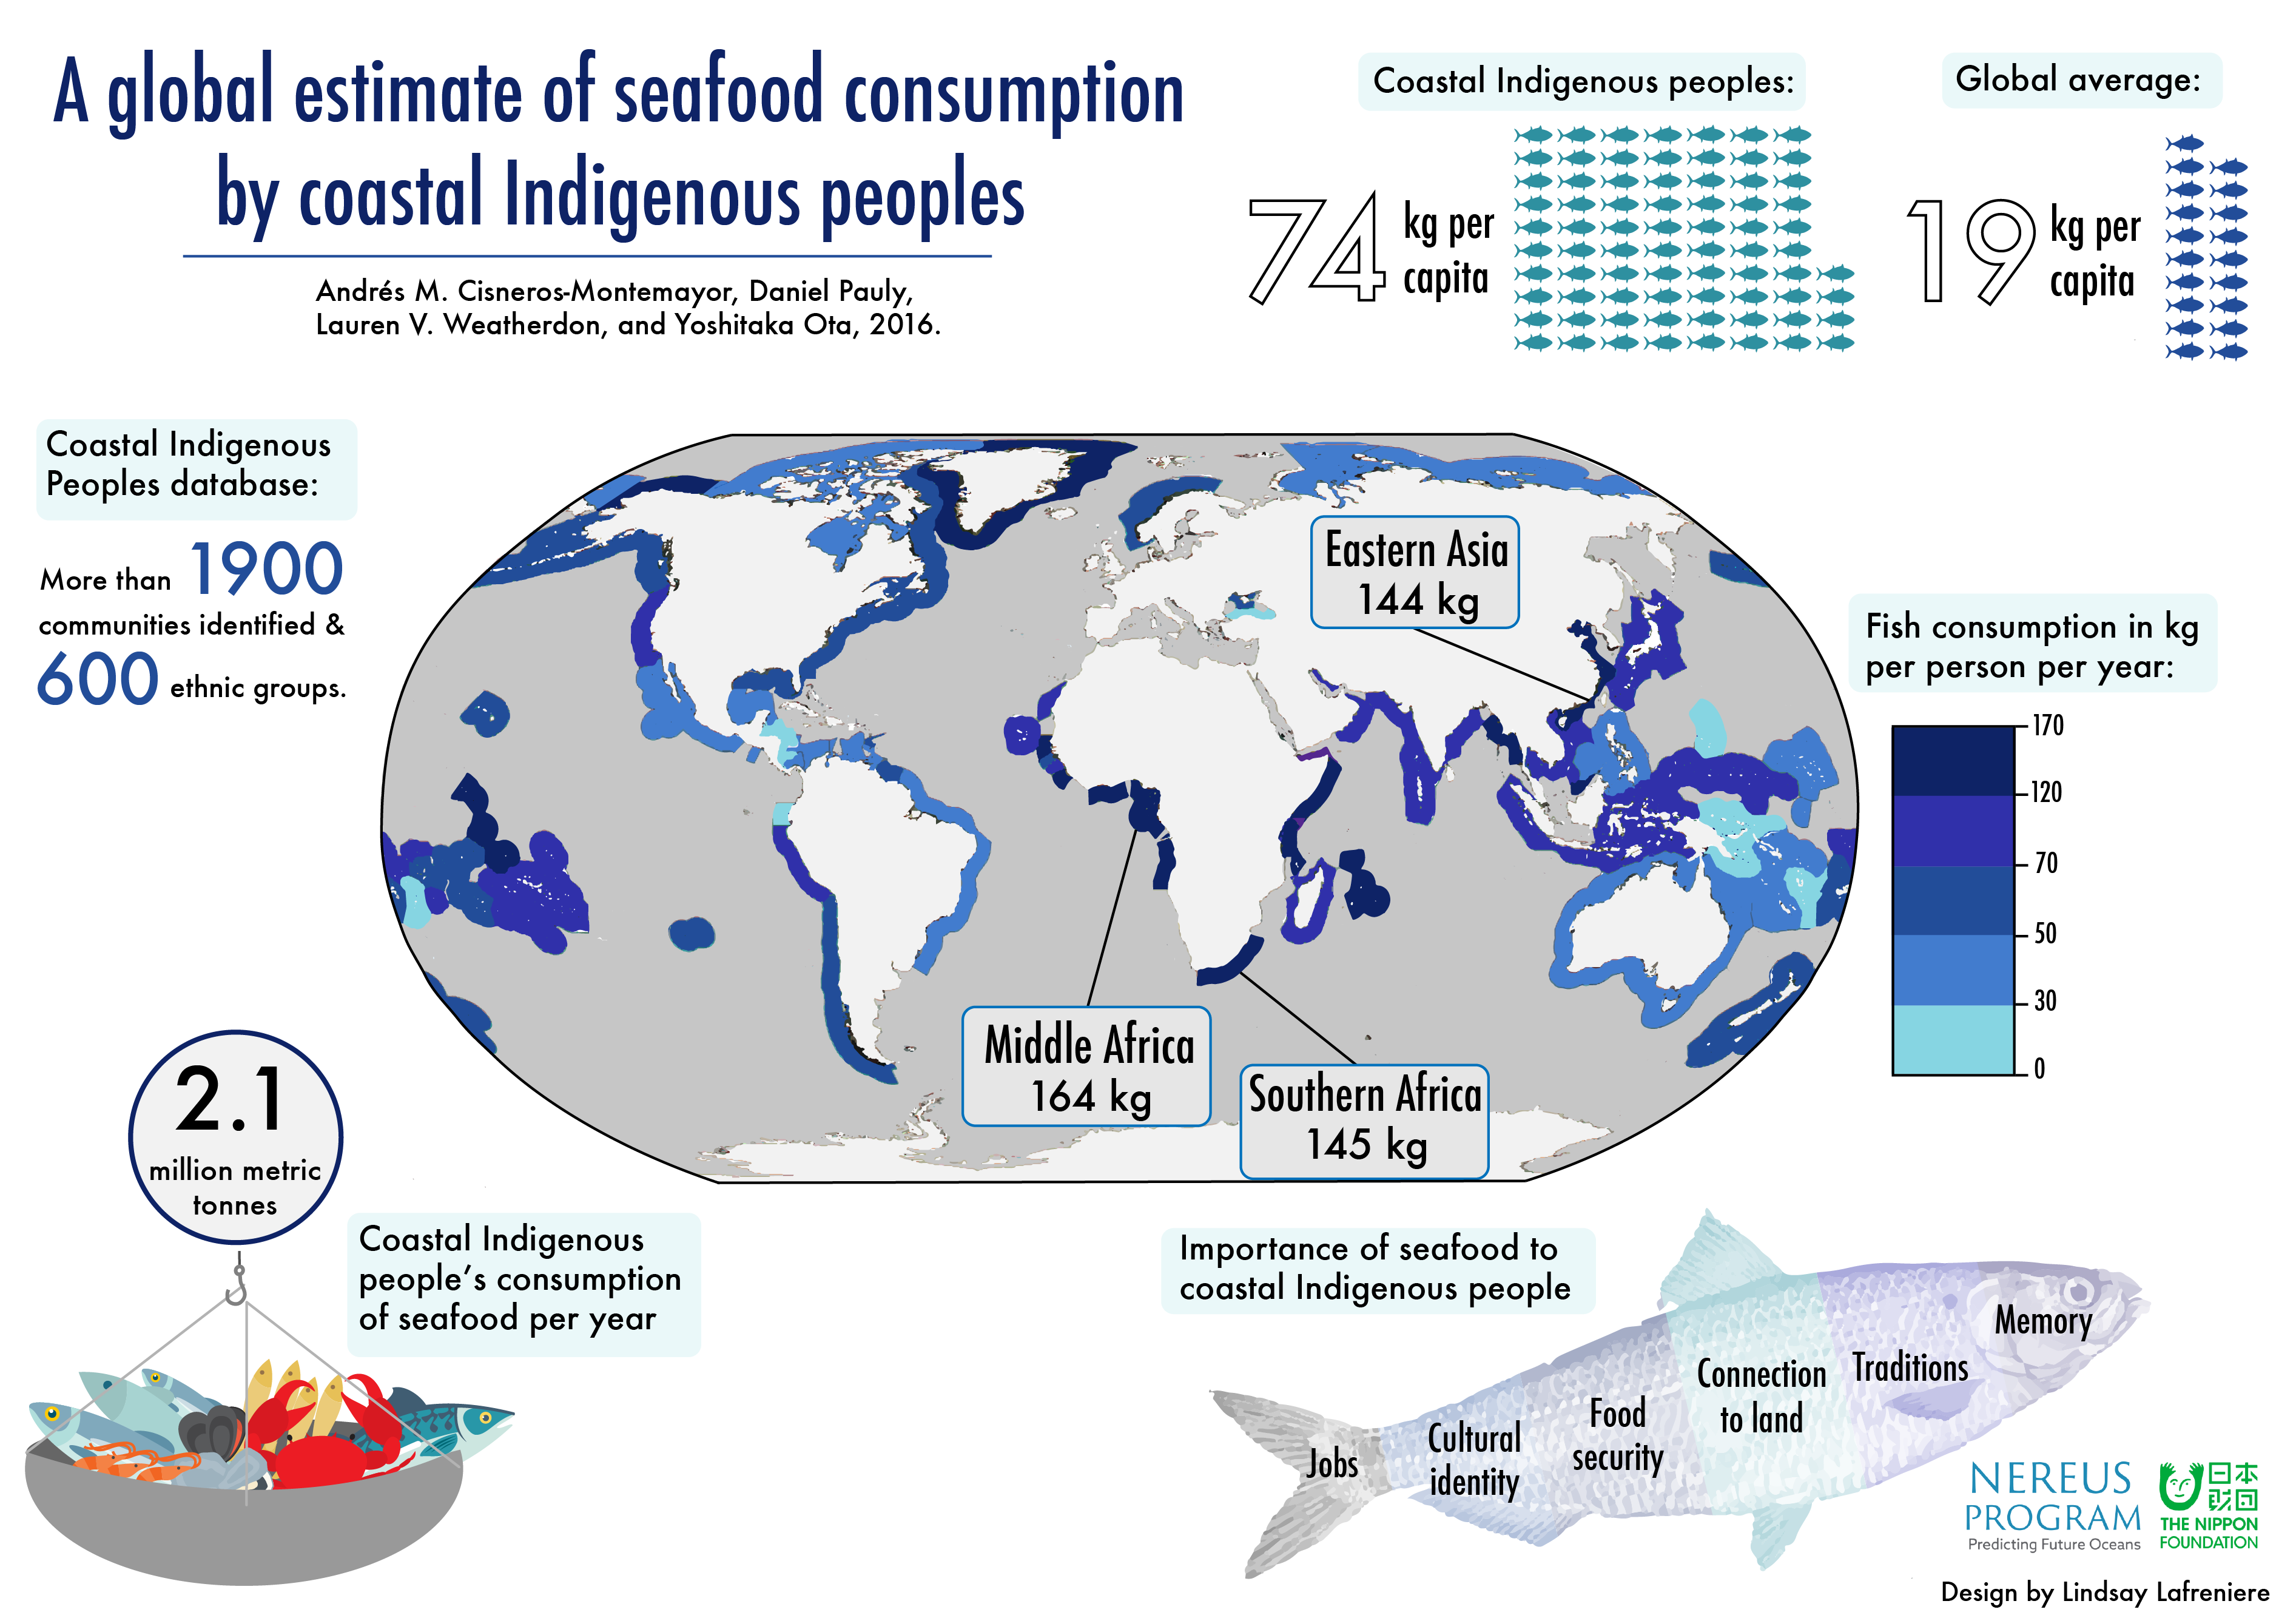 A Global Estimate of Seafood Consumption by Coastal Indigenous Peoples